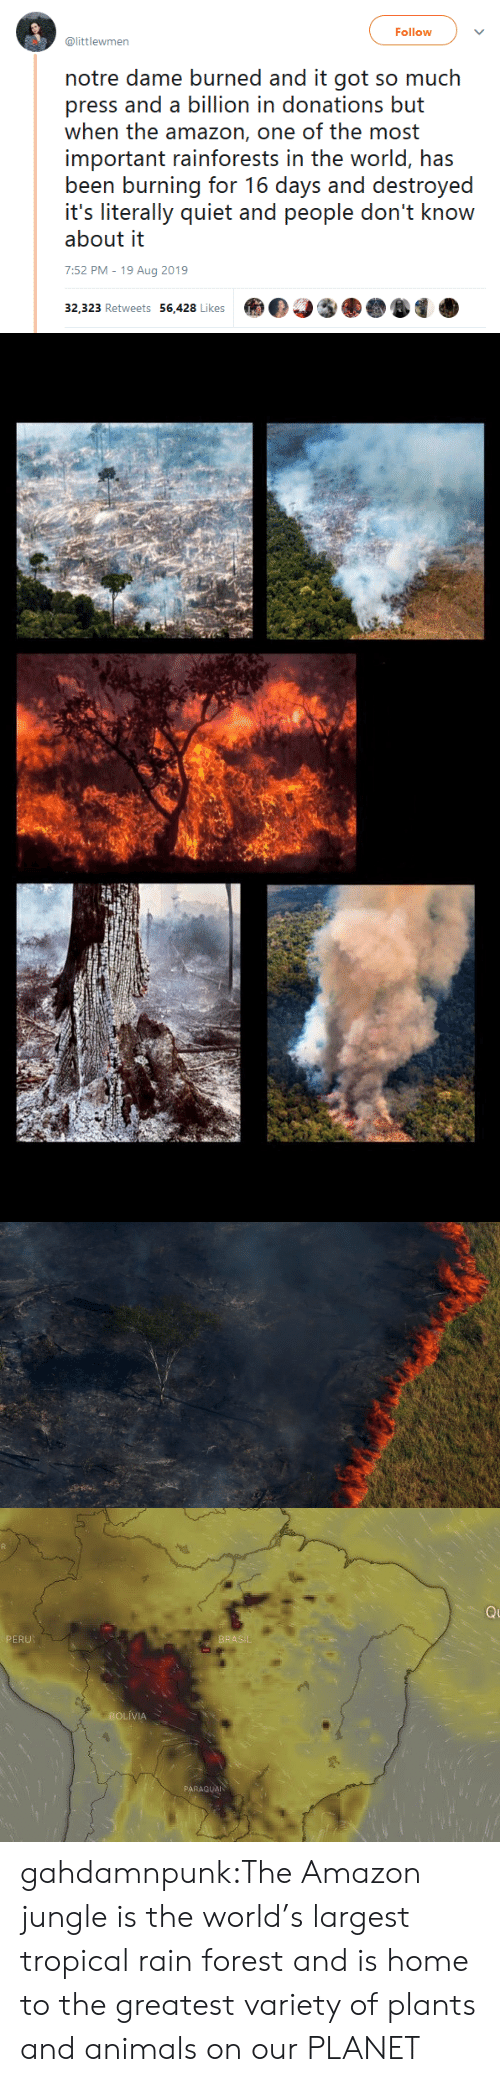 brasil: Follow  @littlewmen  notre dame burned and it got so much  press and a billion in donations but  when the amazon, one of the most  important rainforests in the world, has  been burning for 16 days and destroyed  it's literally quiet and people don't know  about it  7:52 PM - 19 Aug 2019  32,323 Retweets 56,428 Likes   Q  PERU  BRASIL  BOLIVIA  PARAGUAN gahdamnpunk:The Amazon jungle is the world's largest tropical rain forest and is home to the greatest variety of plants and animals on our PLANET